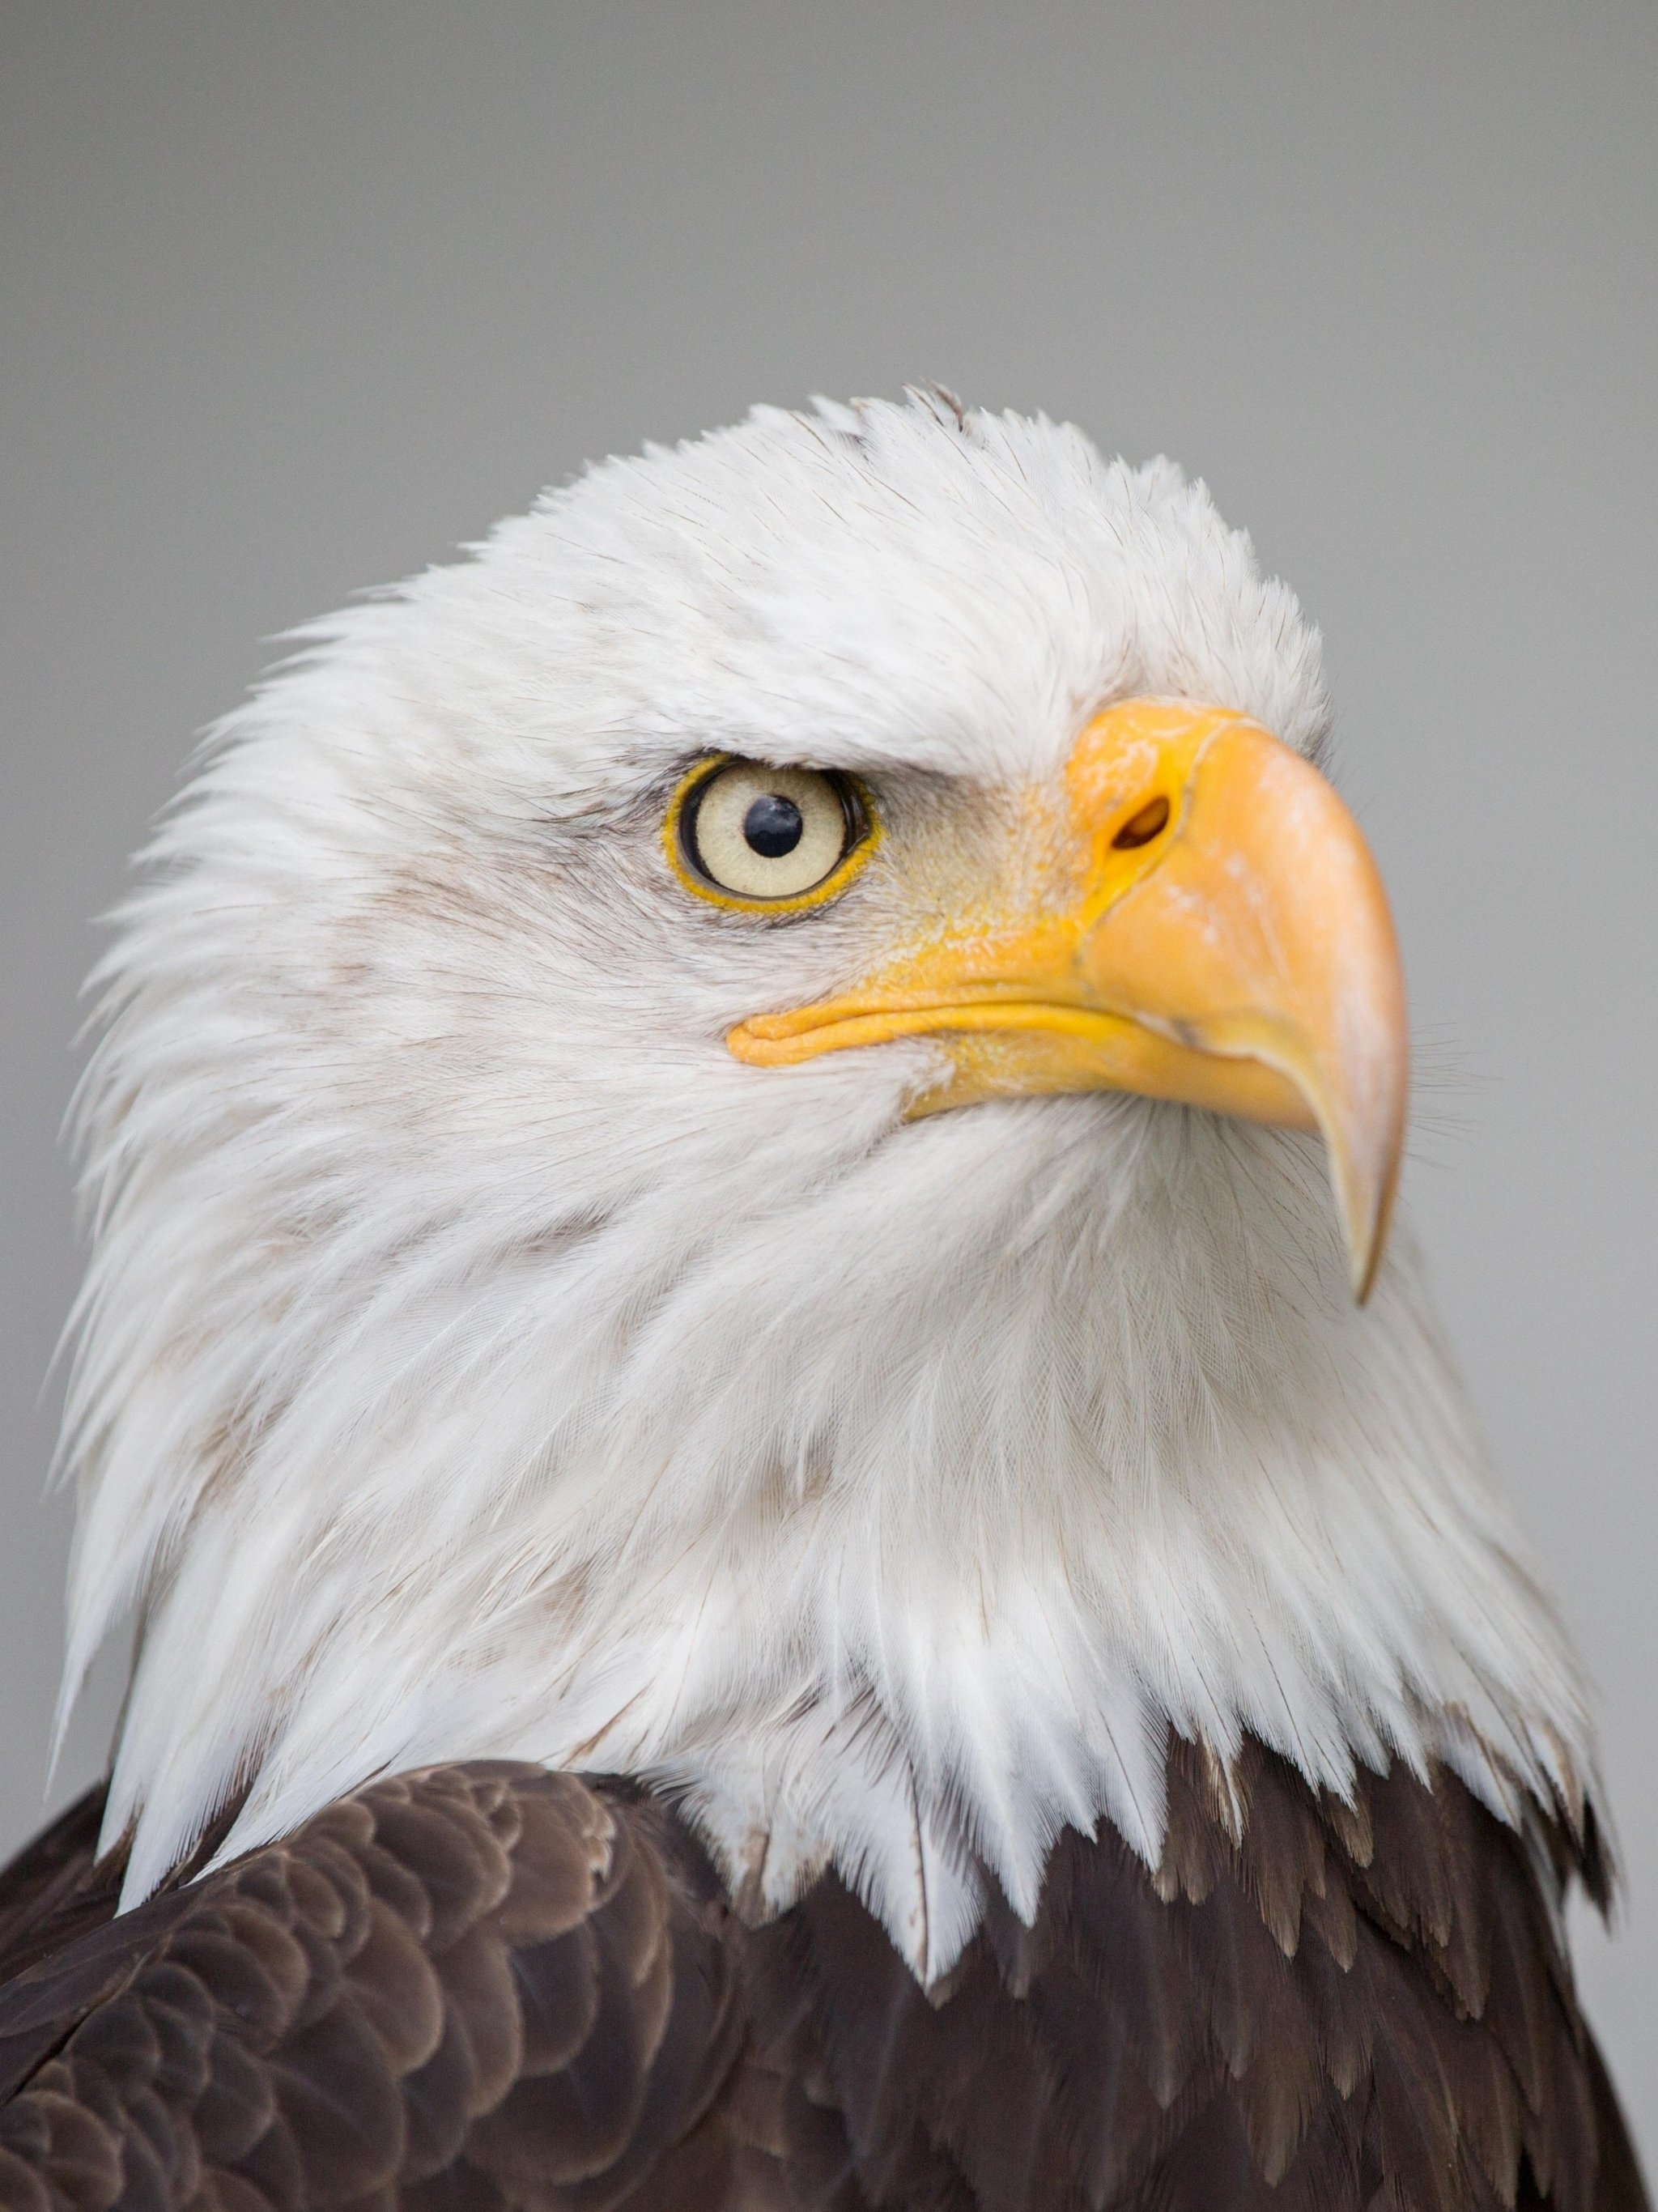 bald eagle wallpaper - mobile & desktop background